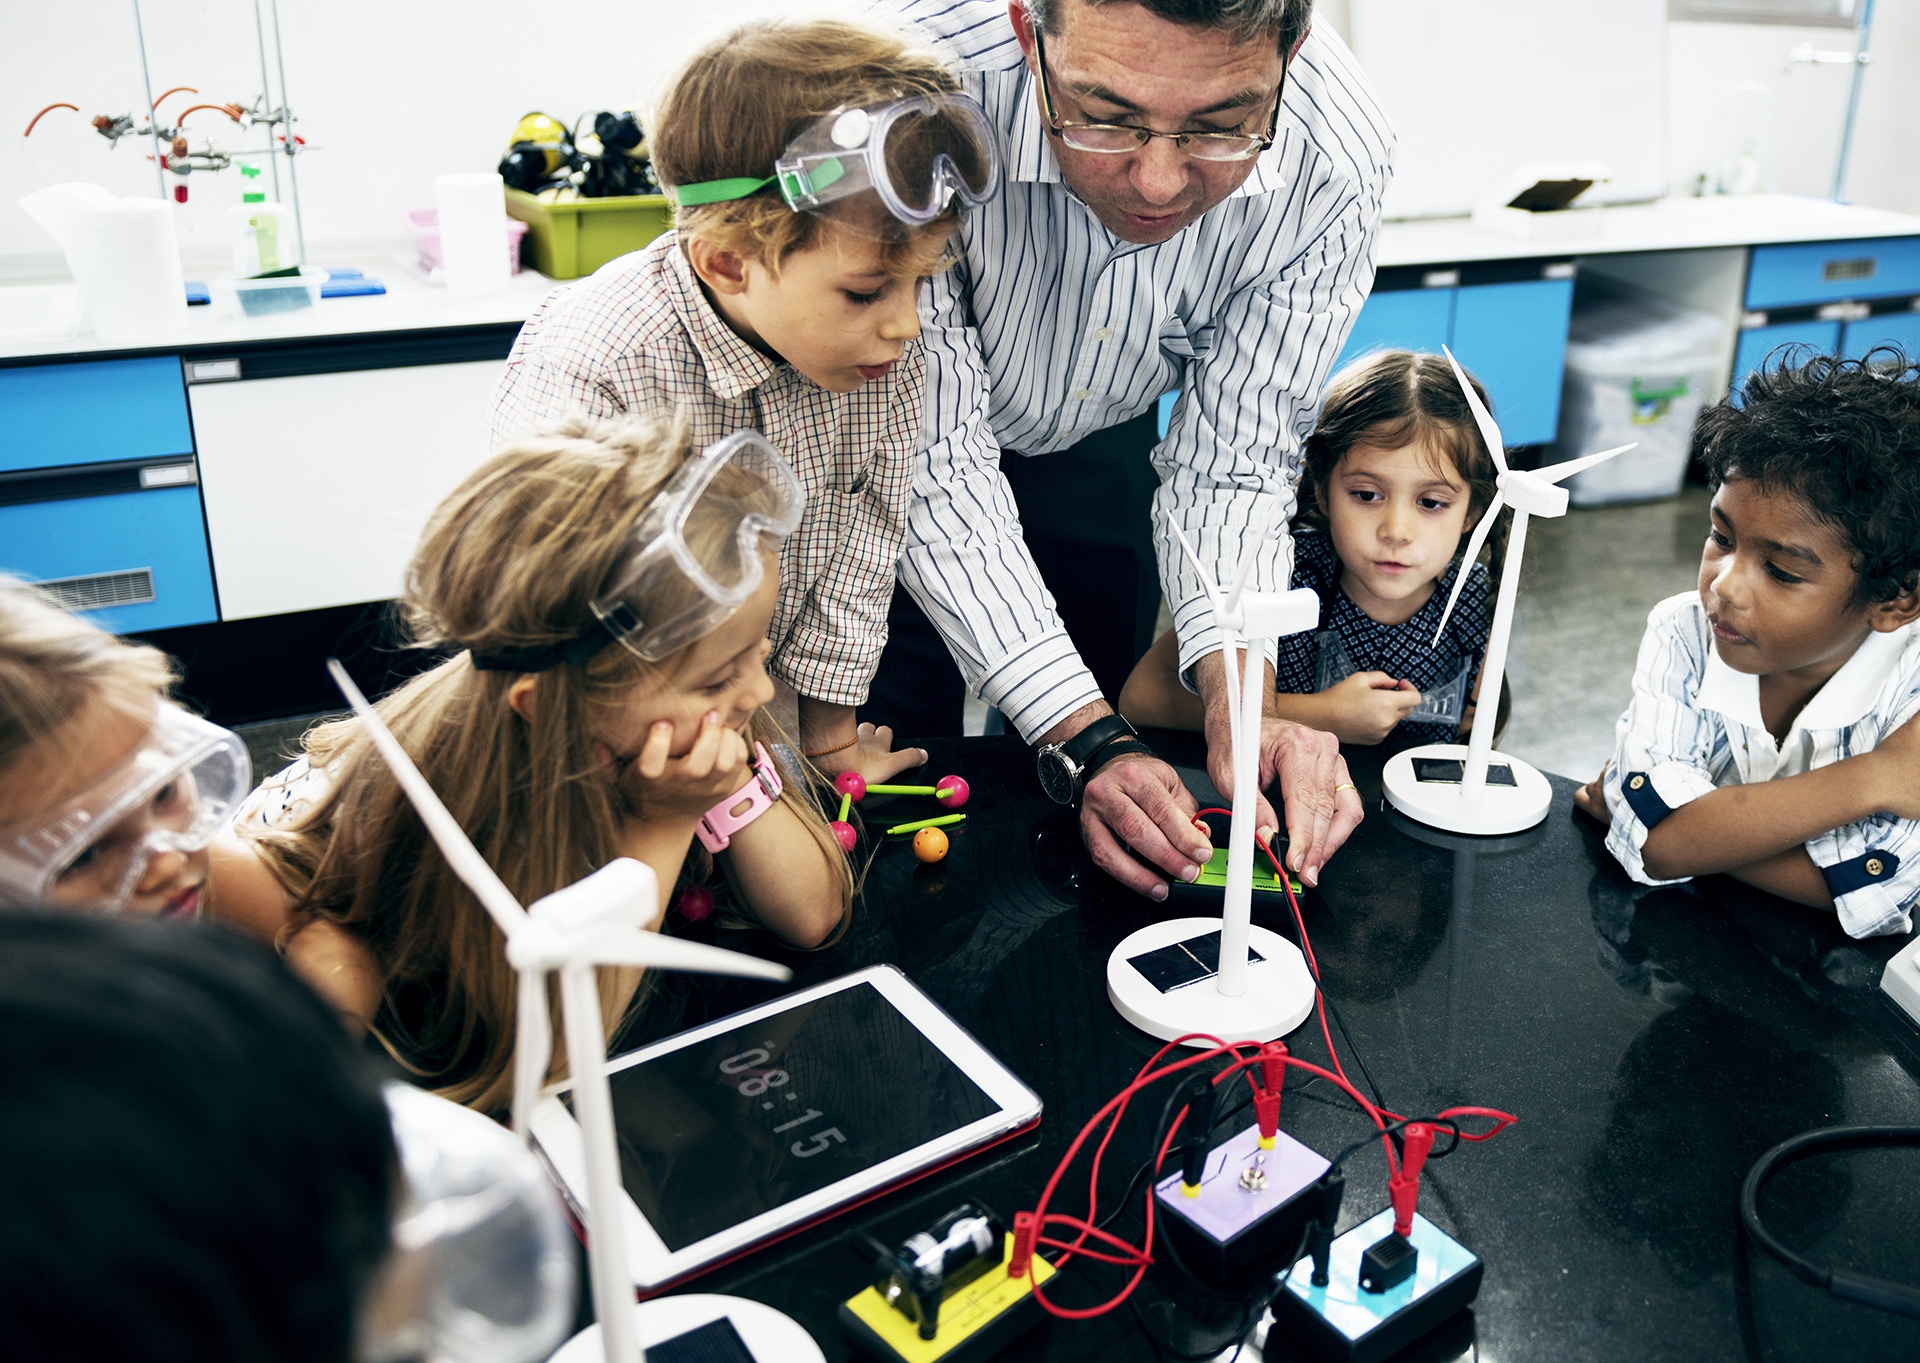 What helps children learn difficult tasks: A teacher's presence may be worth more than a screen, Trends in Neuroscience and Education, December 2019